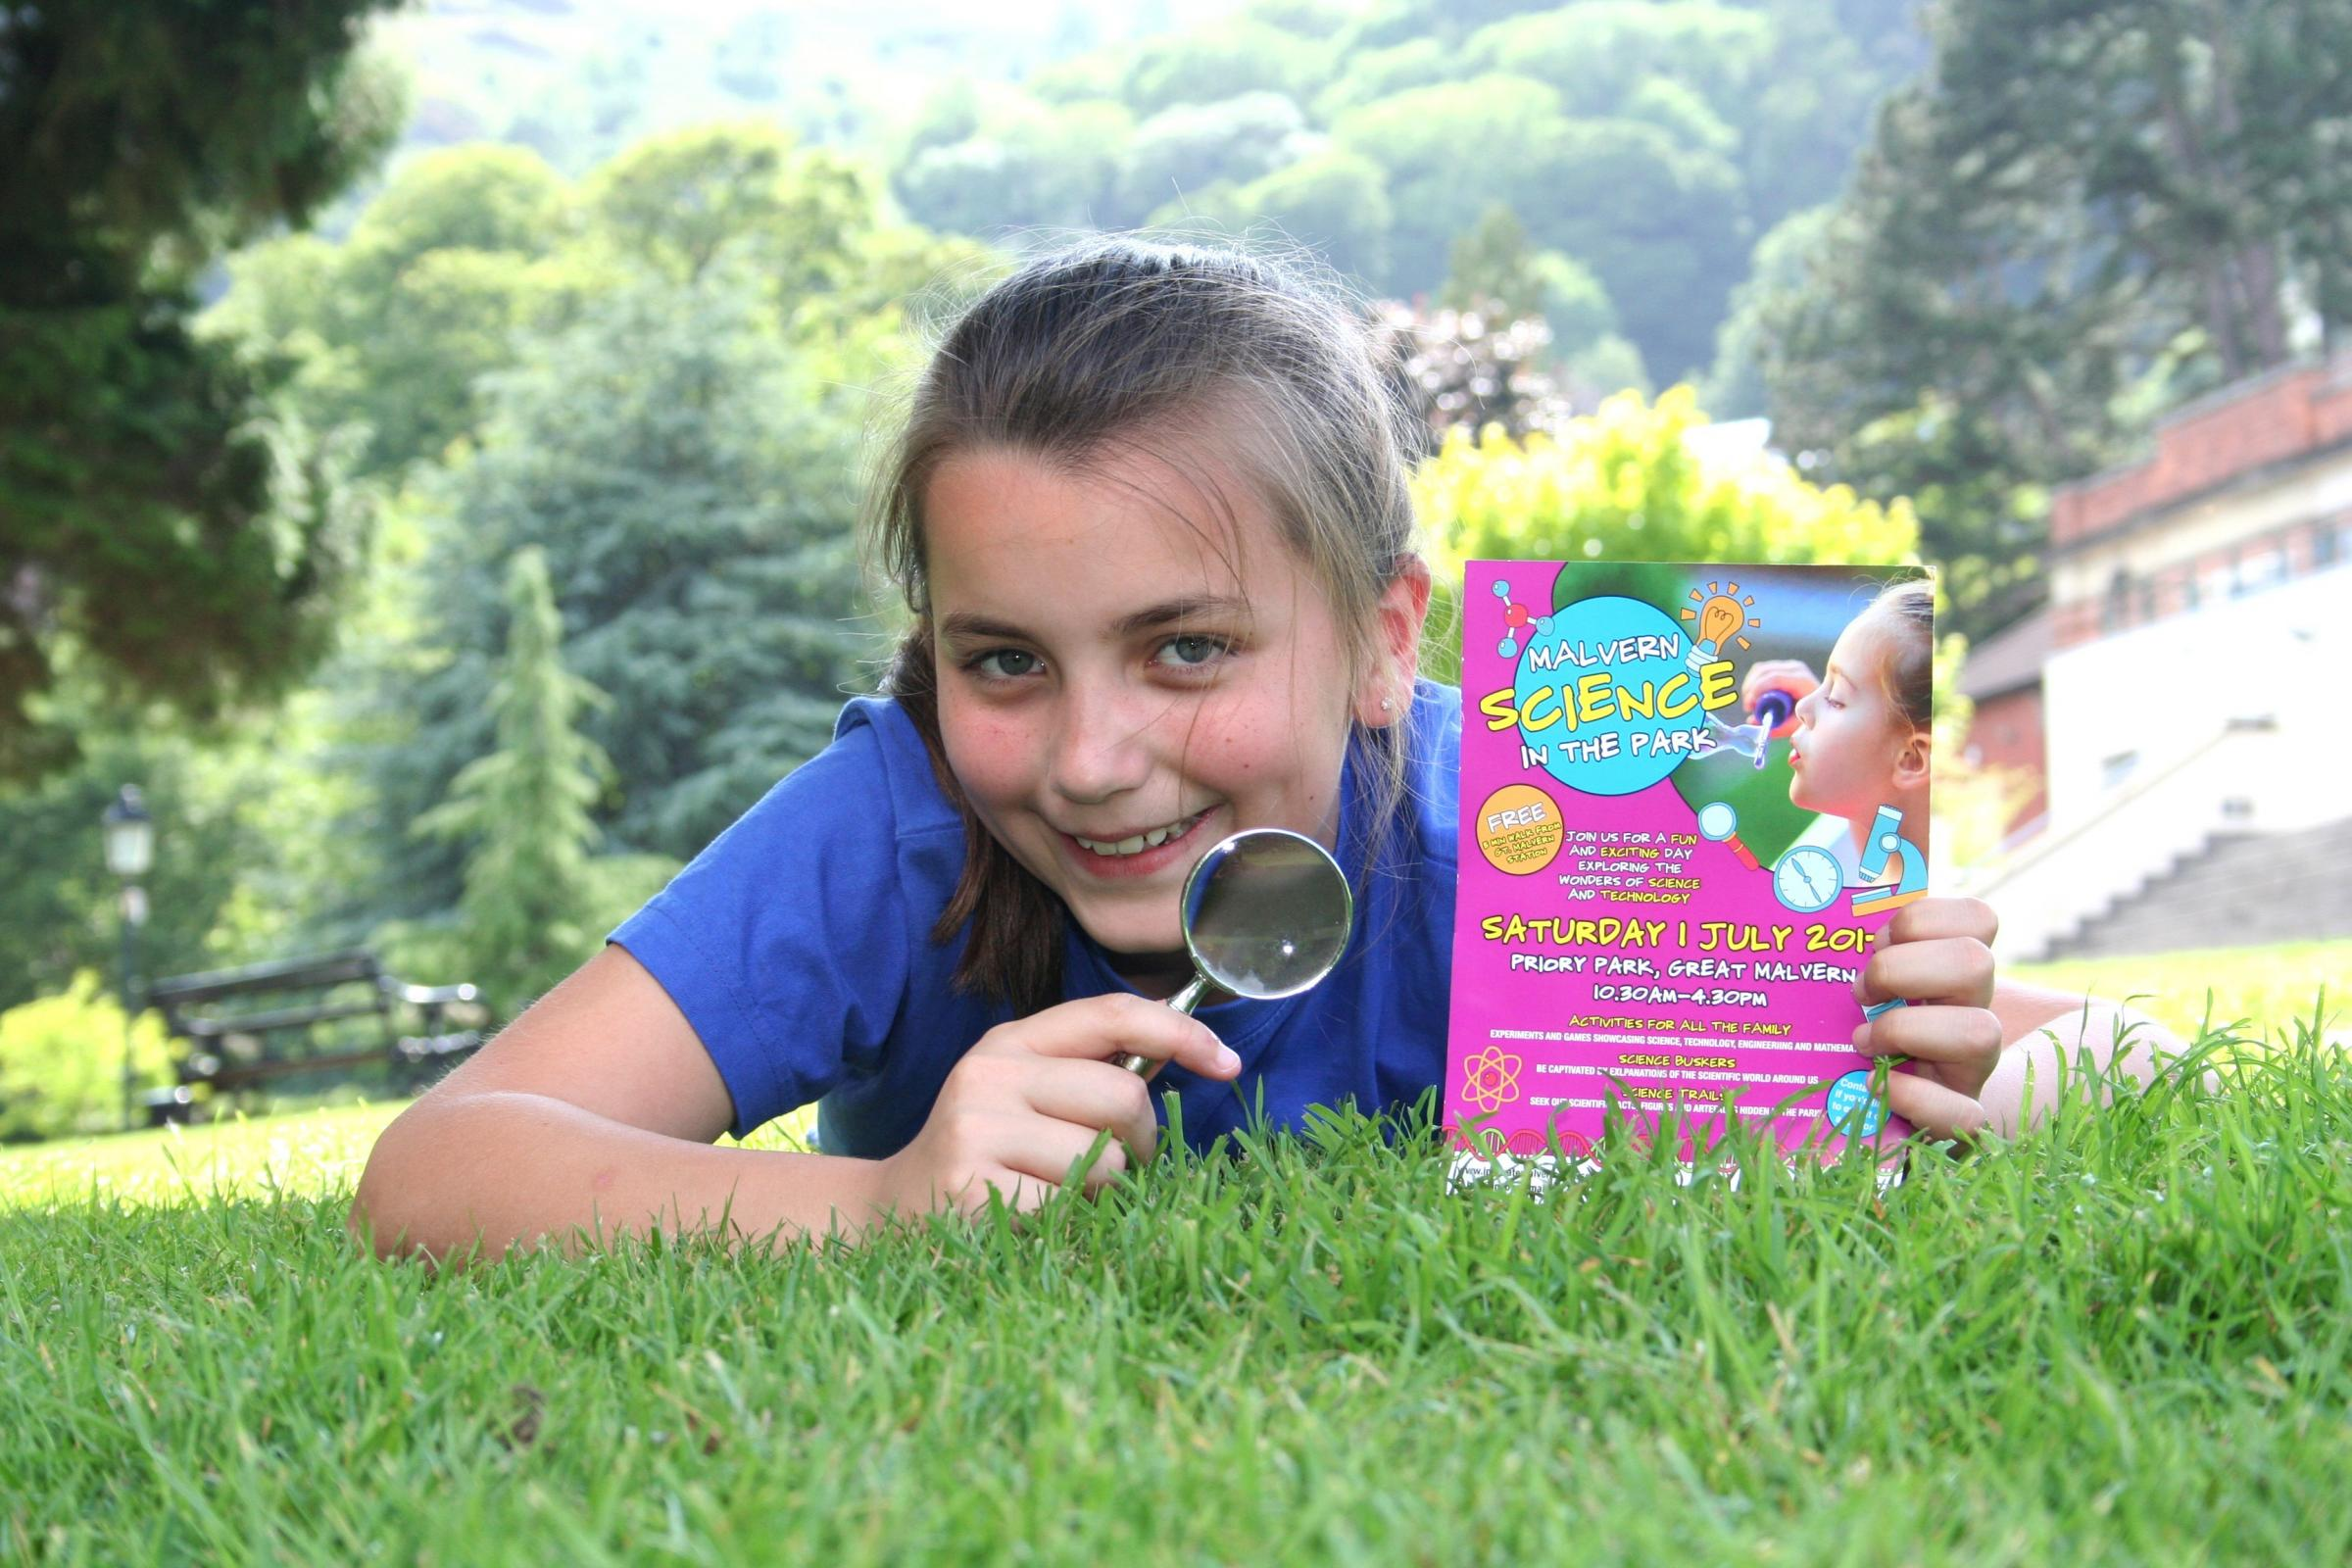 Amy Smith on the hunt for clues ahead of Malvern Science in the Park.